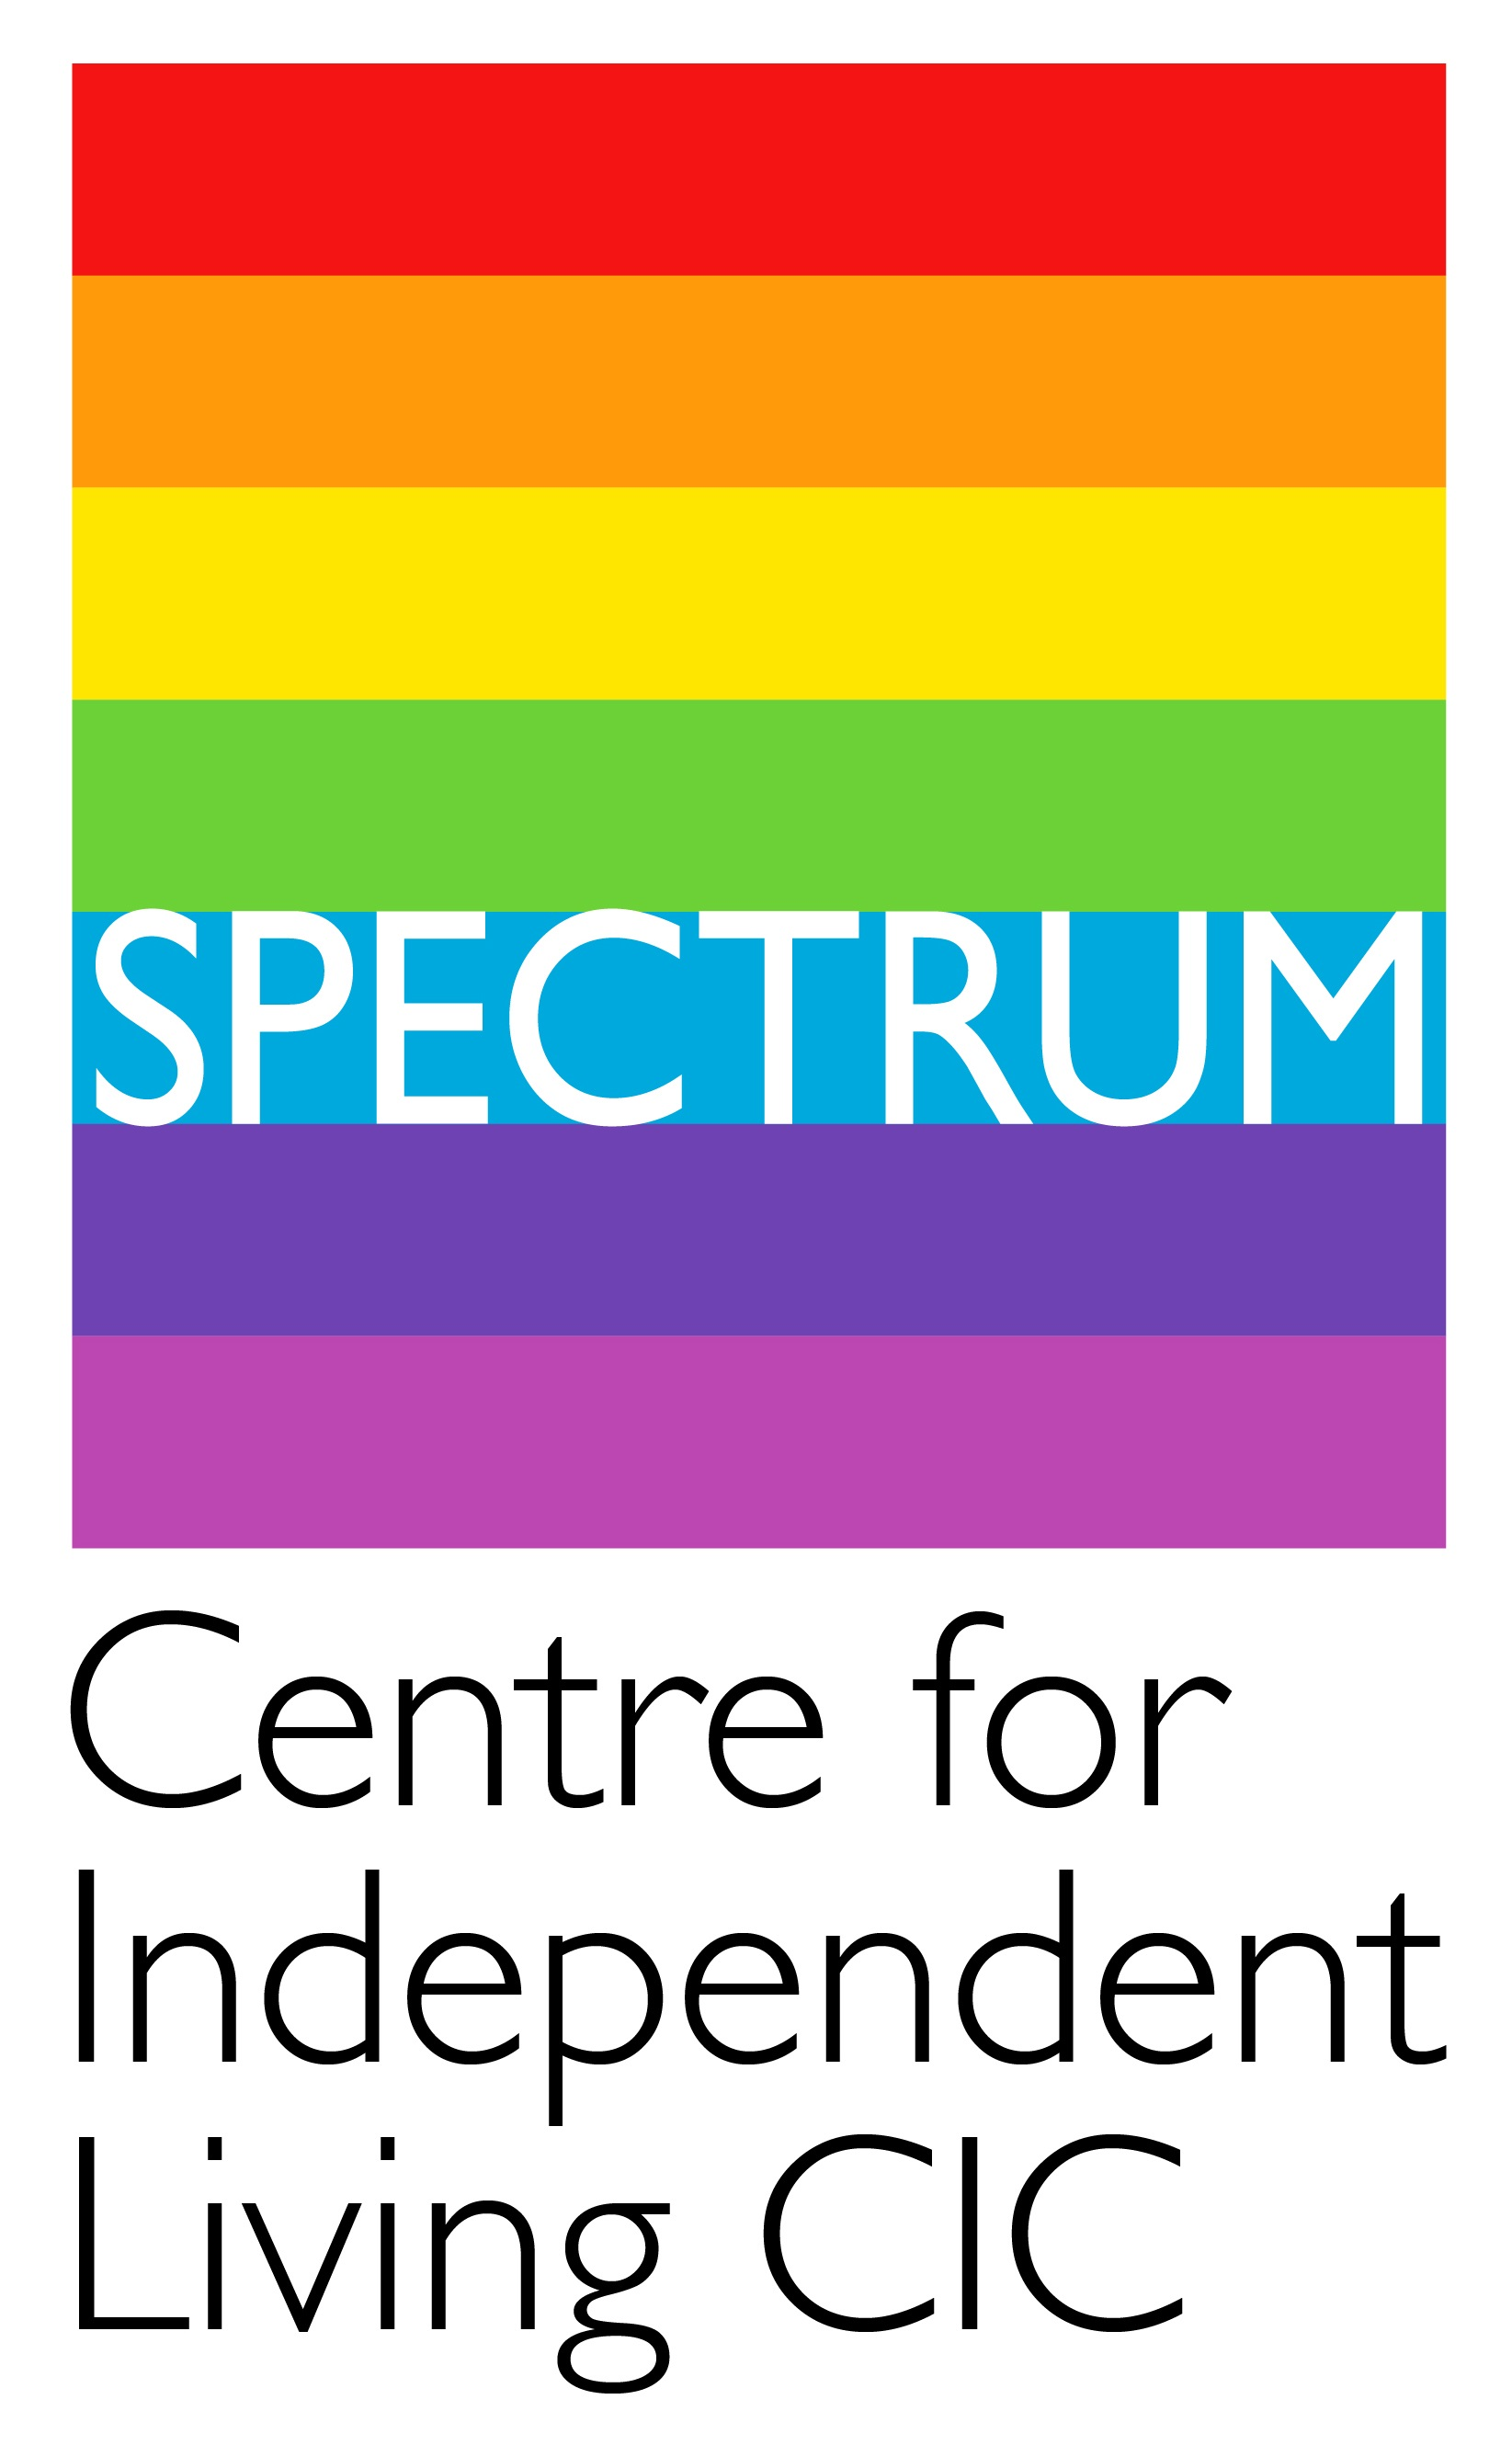 SPECTRUM Centre for Independent Living